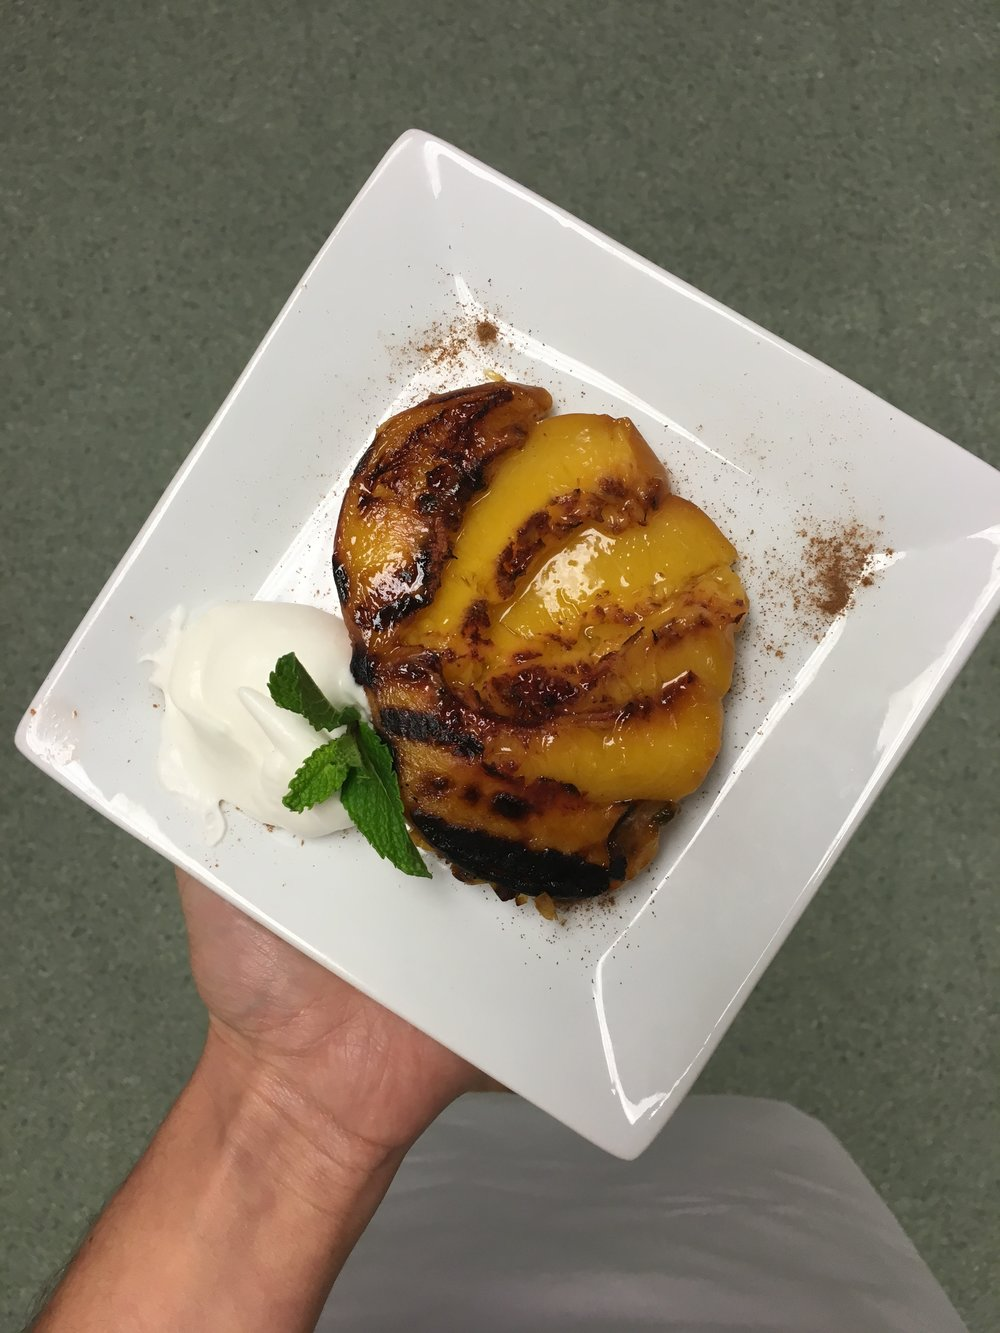 Grilled peach with yogurt whipped cream